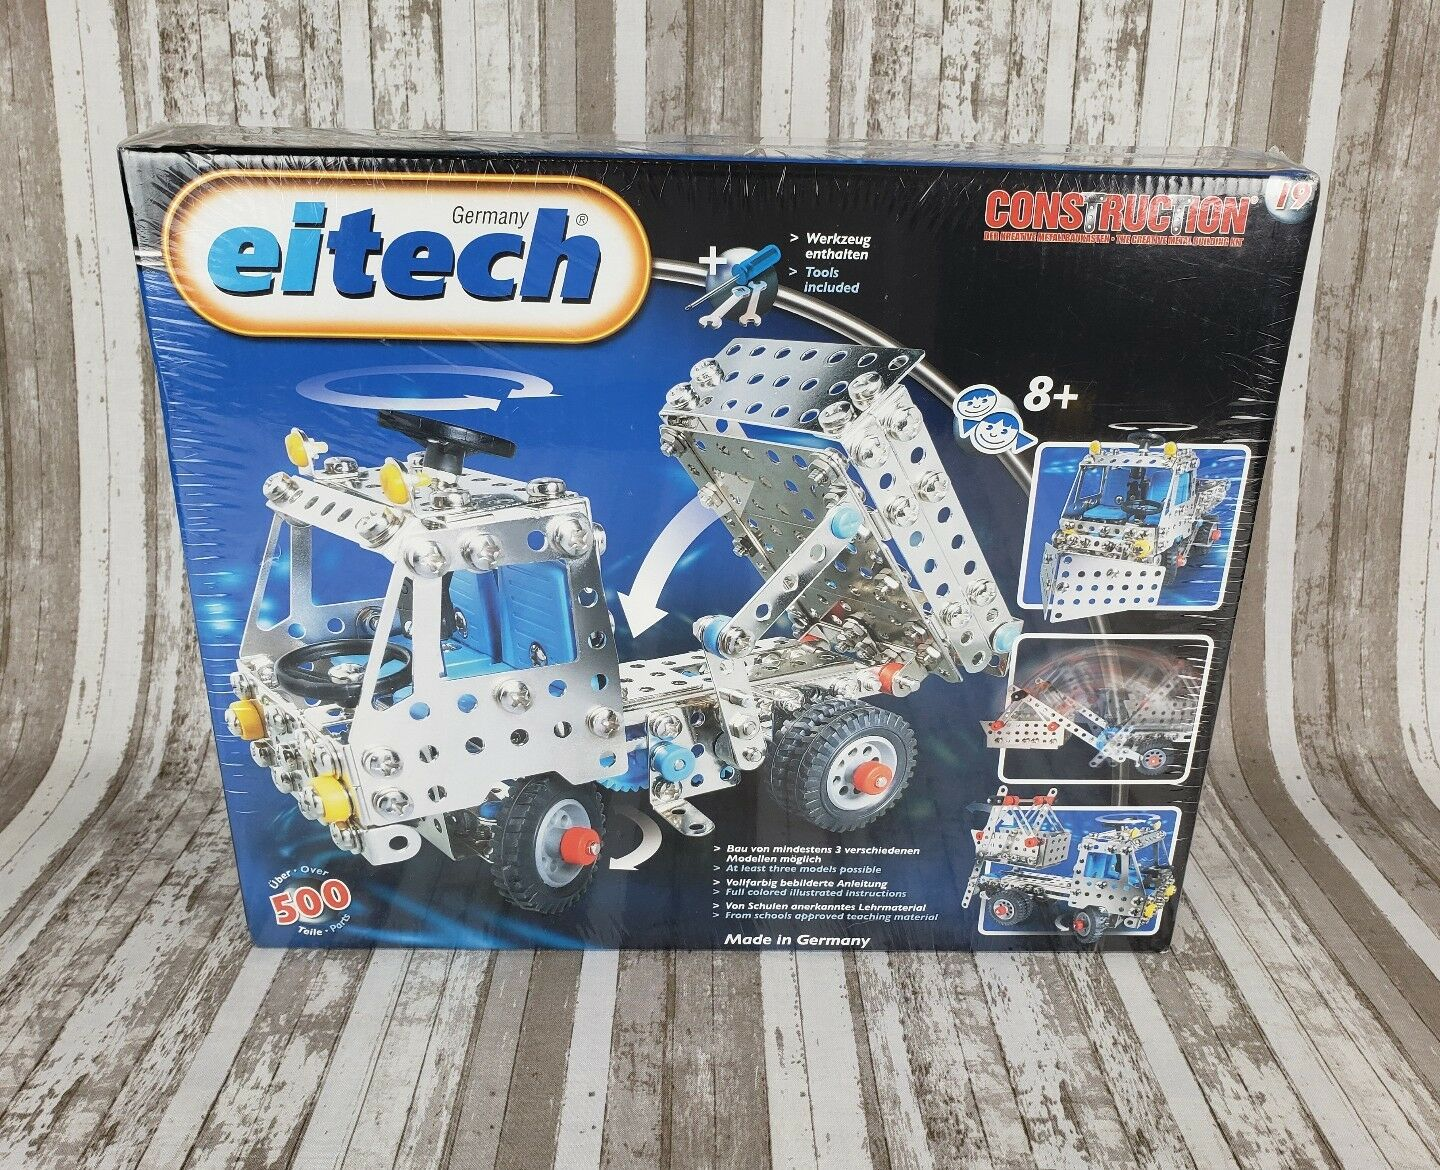 Eitech Construction 19 Creative Metal Building Kit 500 Parts W Tools Germany NEW